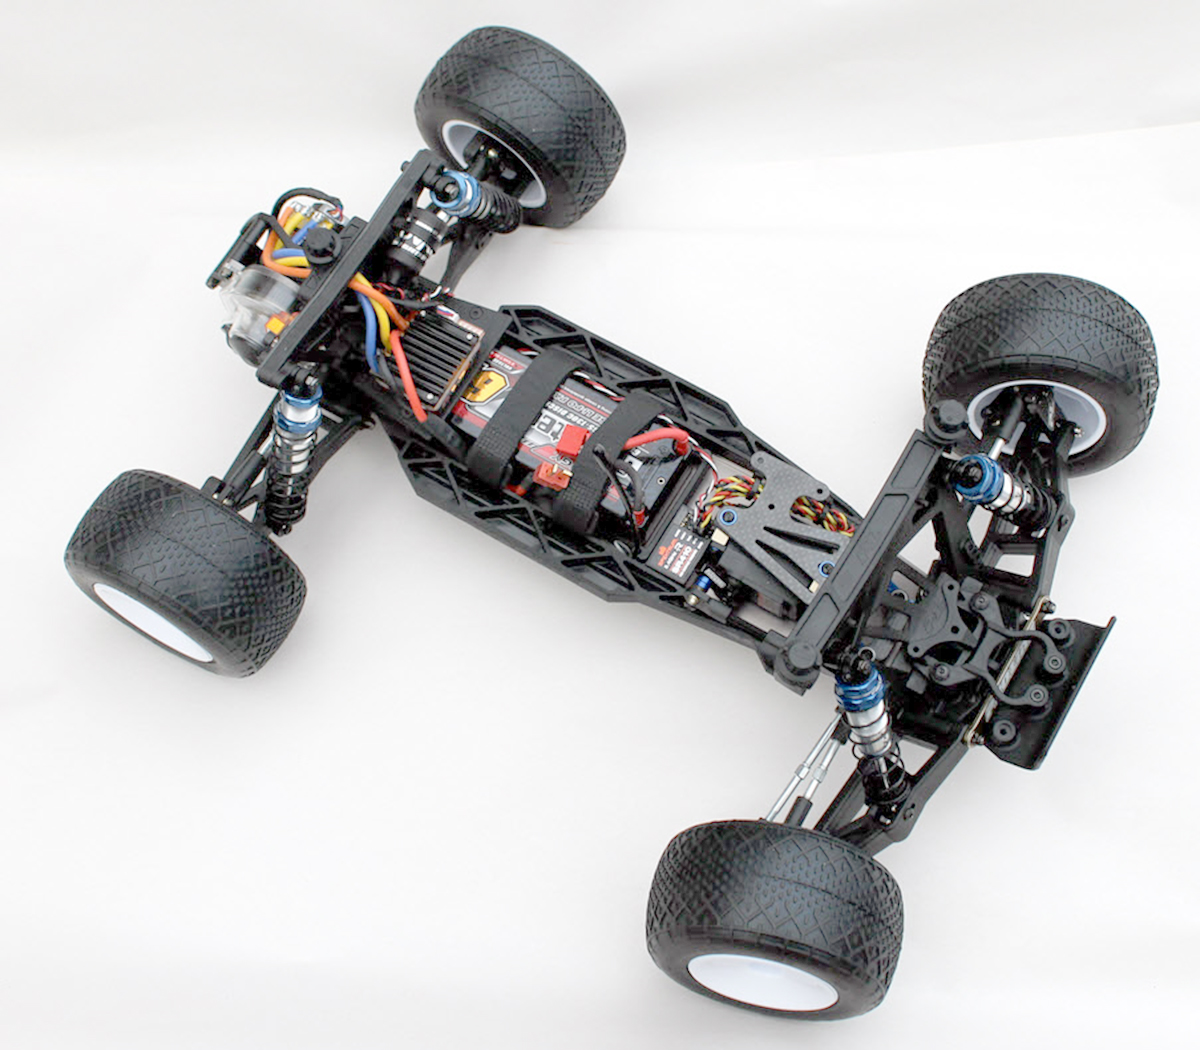 Pro-Line stadium truck chassis